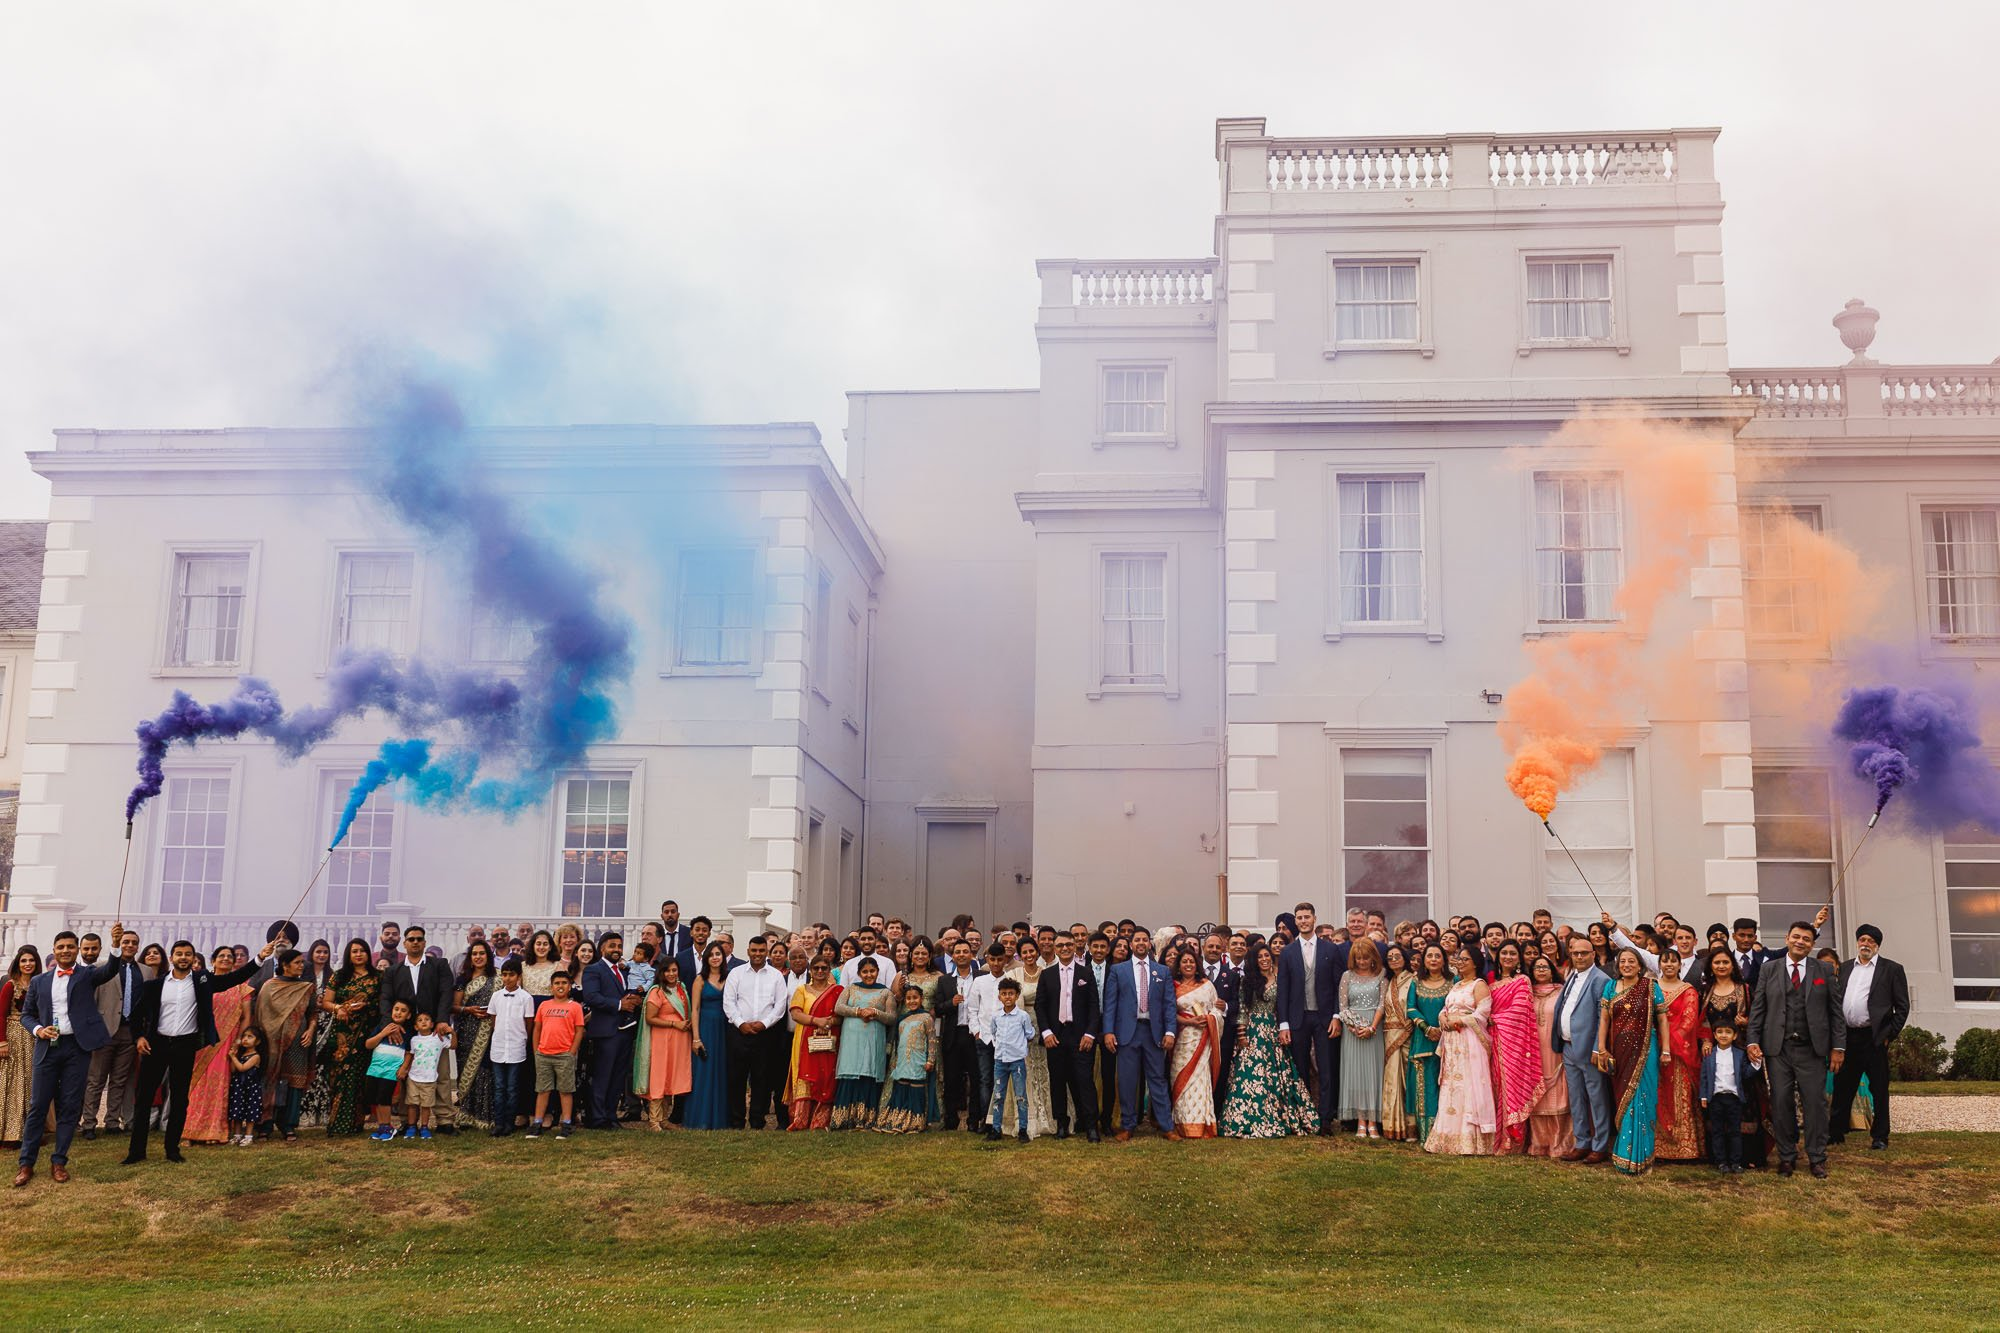 De Vere Wokefield Estate, Asian wedding photographer, reception, crowd portrait, smoke bomb, smoke grenades